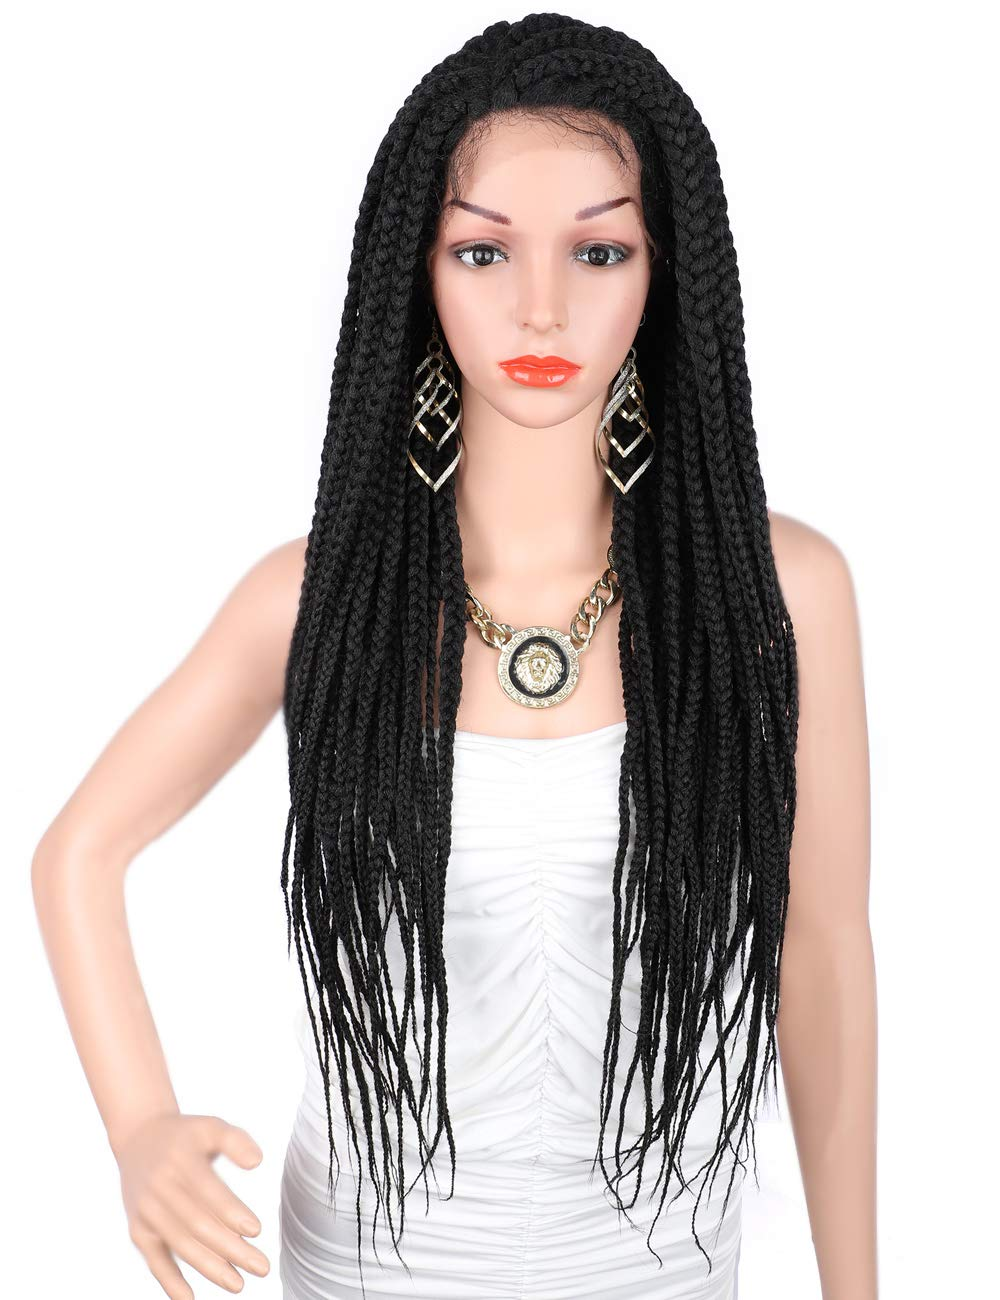 """Kalyss 28"""" Senegal Twisted Braids Lace Front Wigs with Baby Hairs for Black Women Premium Synthetic Black Color Box Braids Natural Looking Side Parting Lace Wigs"""